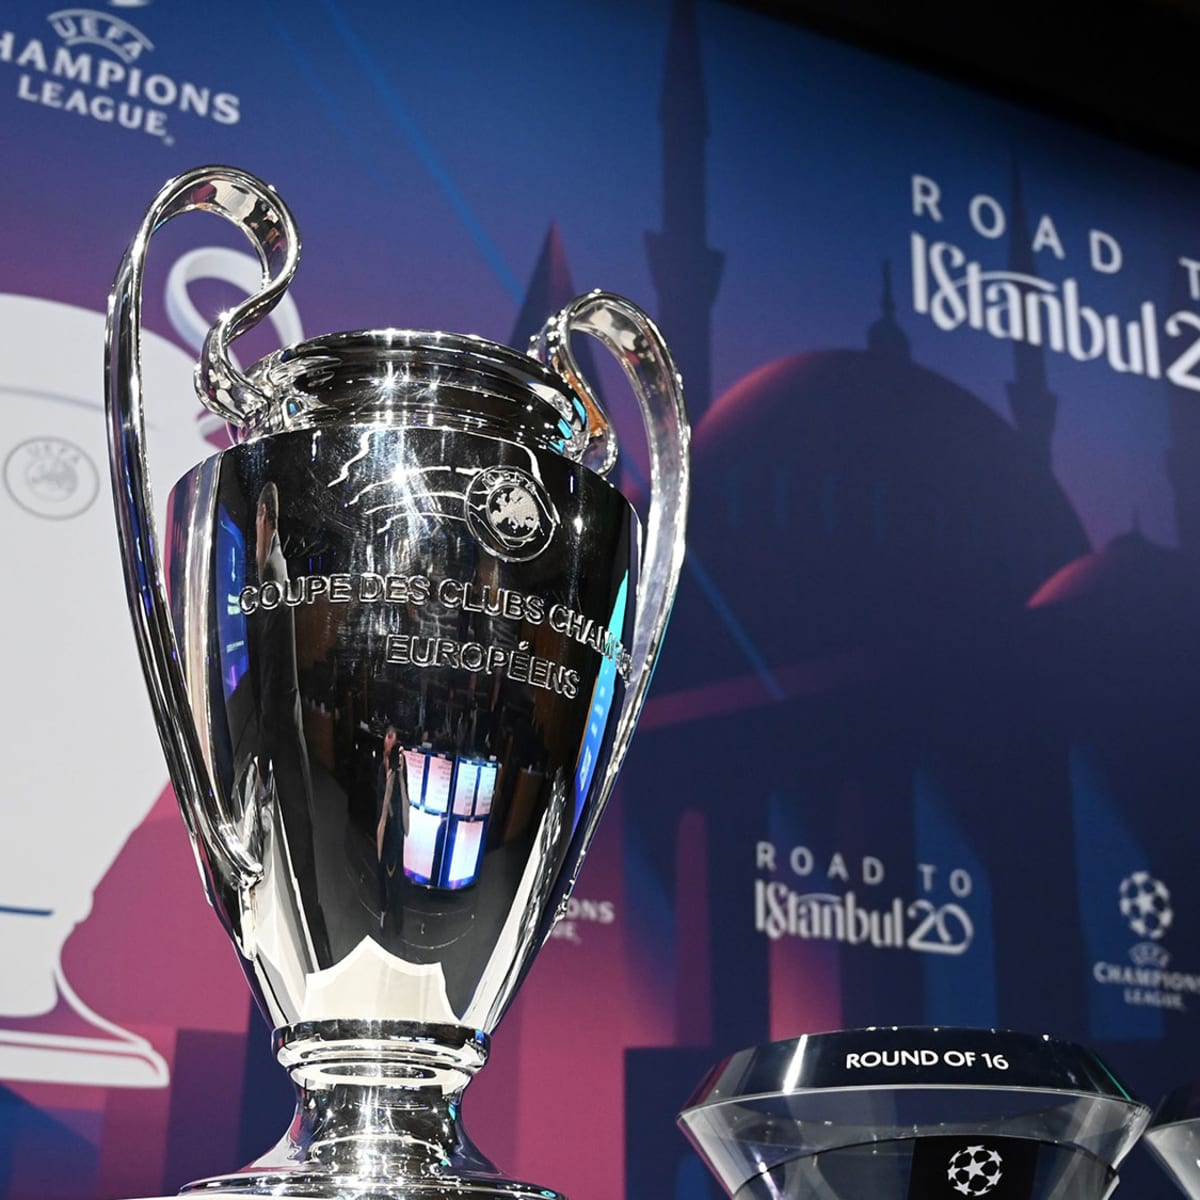 Champions League Final Uefa S August Plan Seems Dubious At Best Sports Illustrated